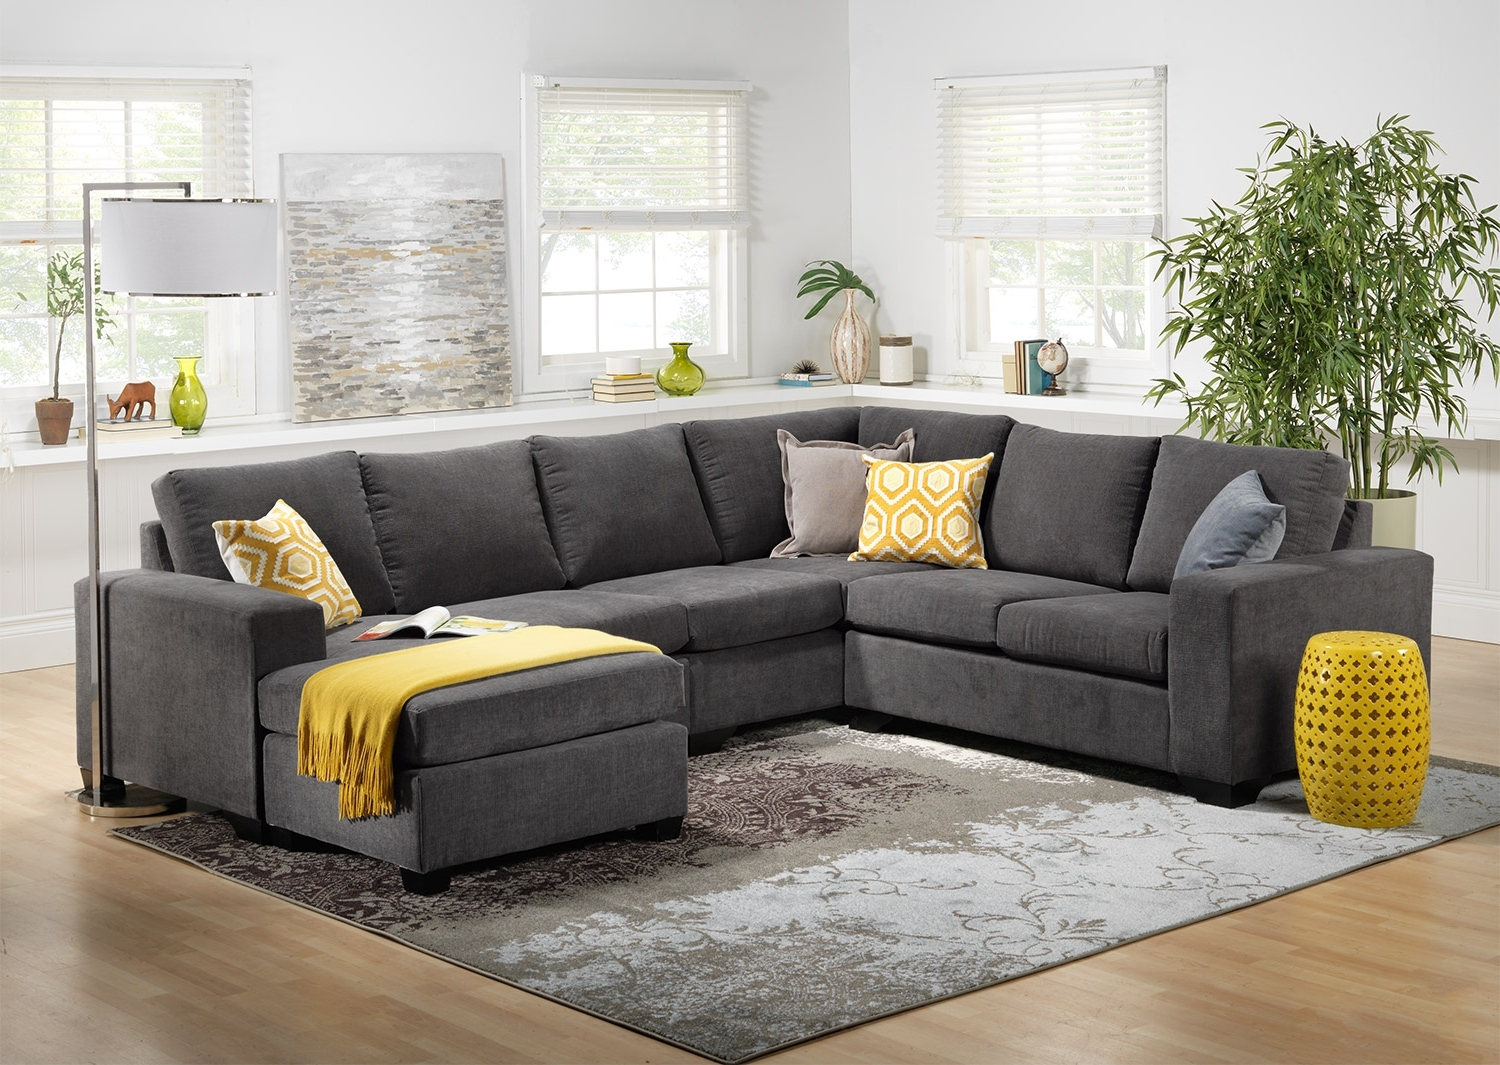 Sectional Sofas At Bc Canada In Recent Danielle 3 Piece Sectional With Right Facing Corner Wedge – Grey (View 8 of 15)